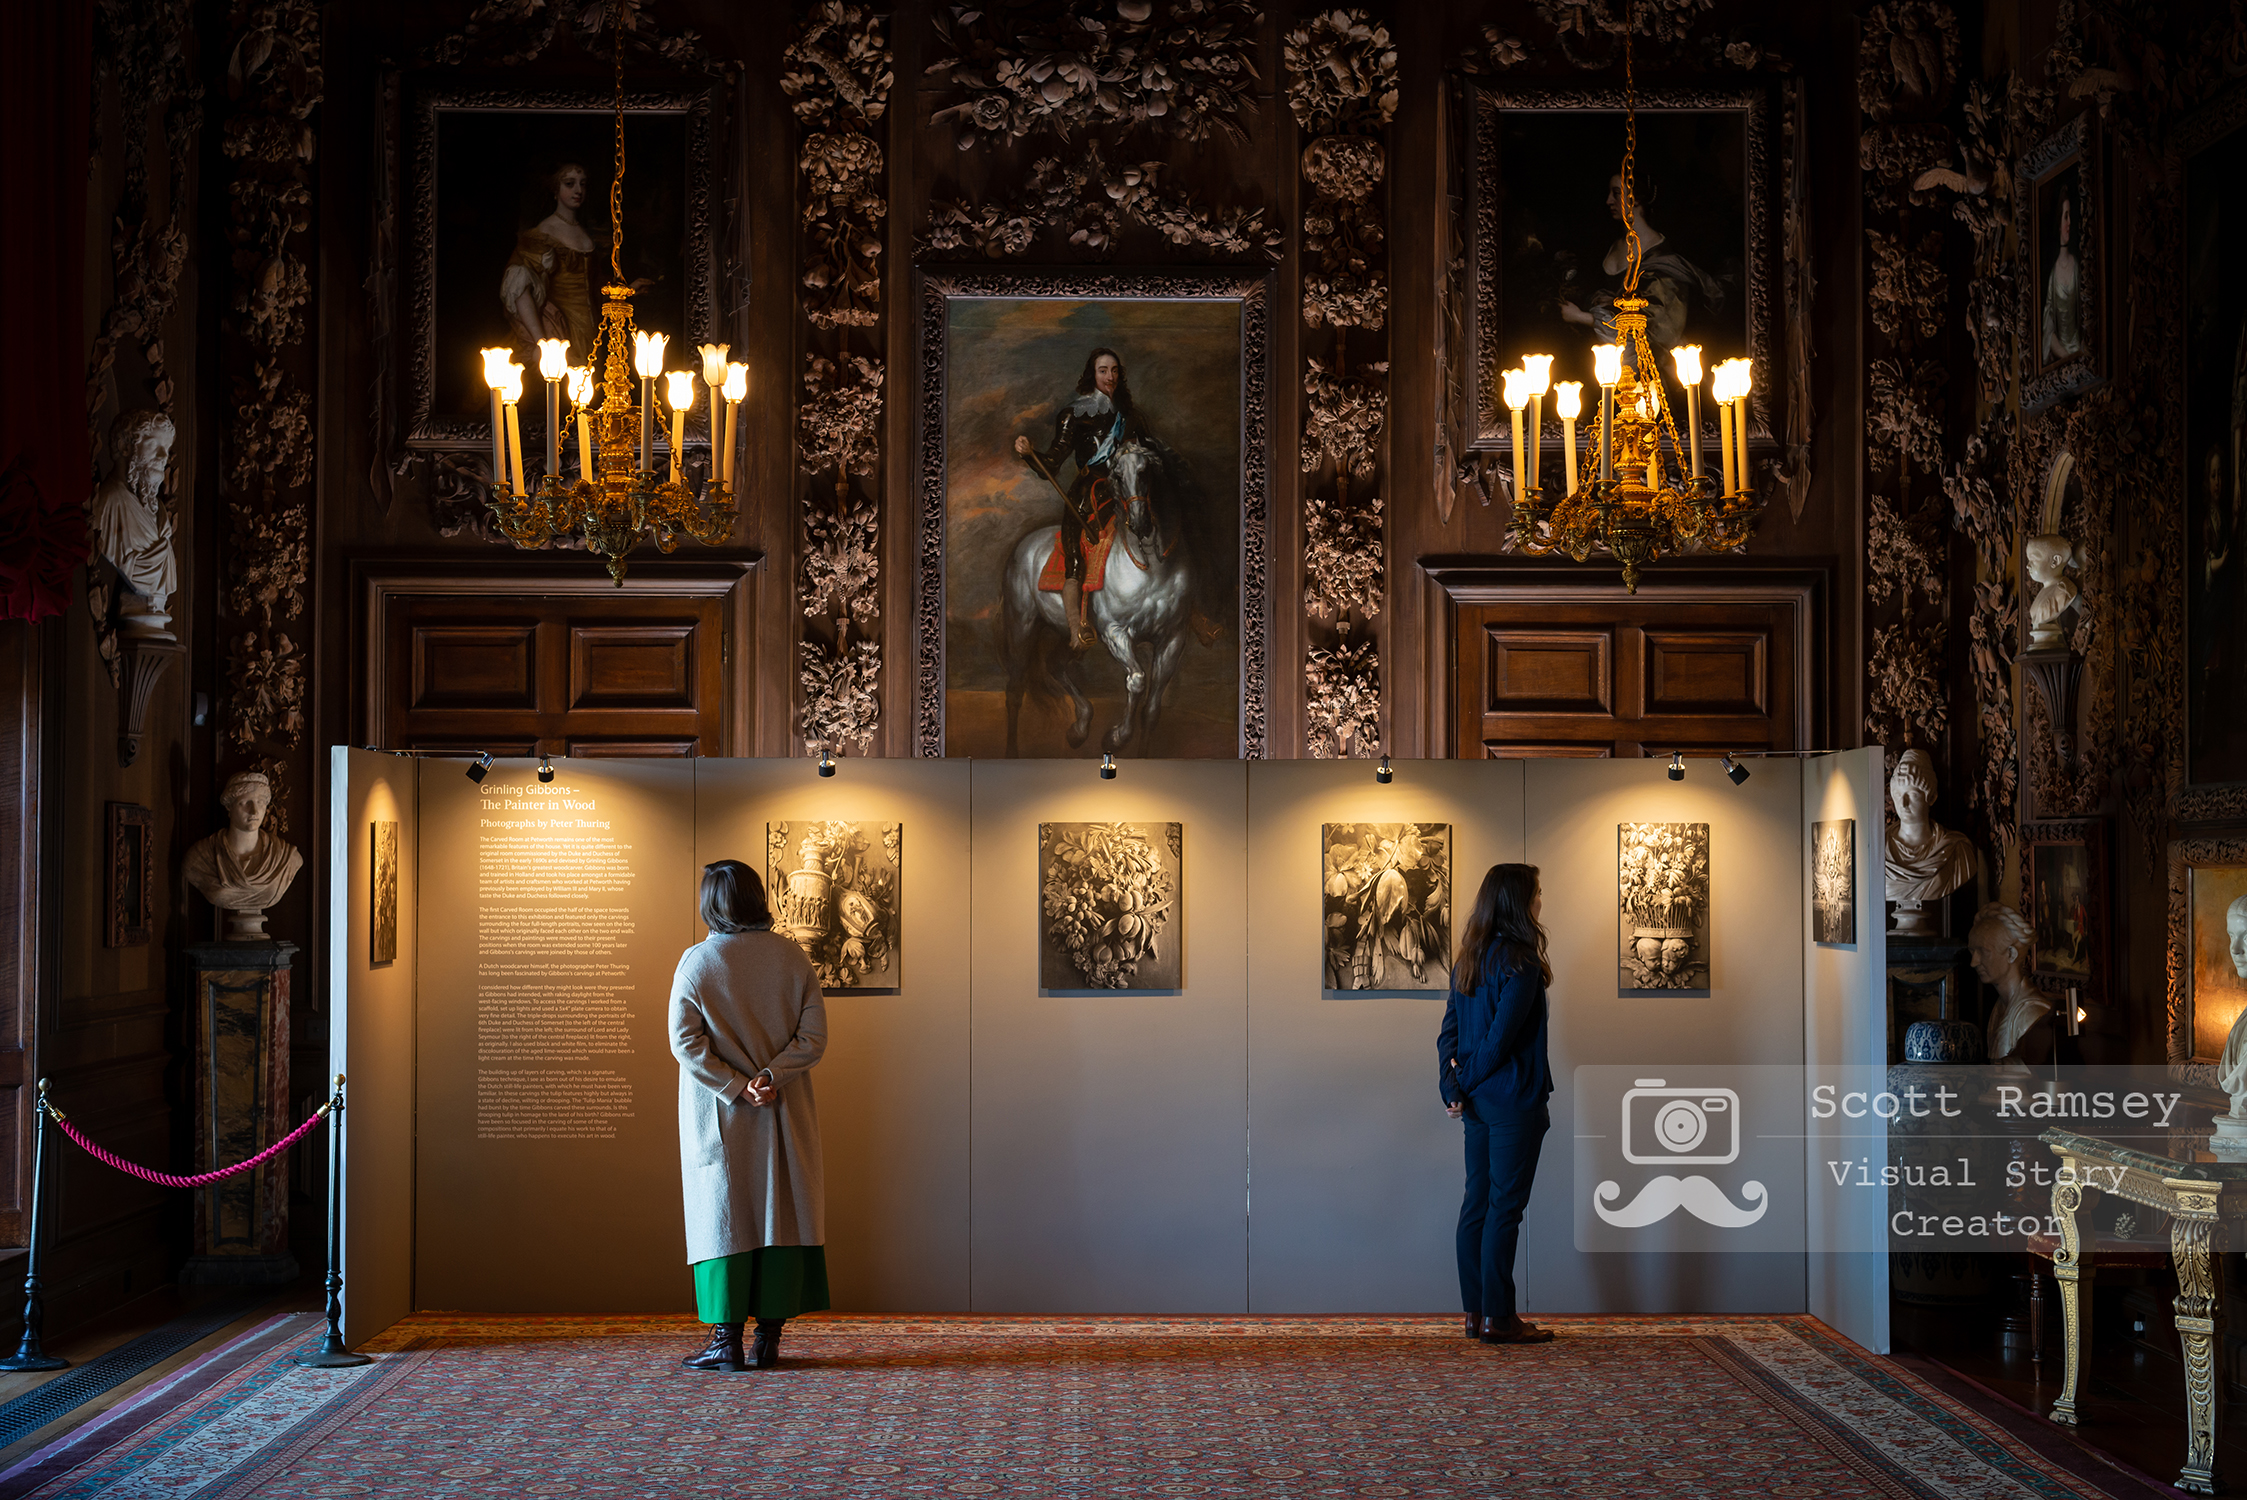 Sussex PR and Public Relations Photographer, Scott Ramsey photographs   a National Trust exhibition of Dutch paintings on display at Petworth House in West Sussex. Photo © Scott Ramsey/The National Trust